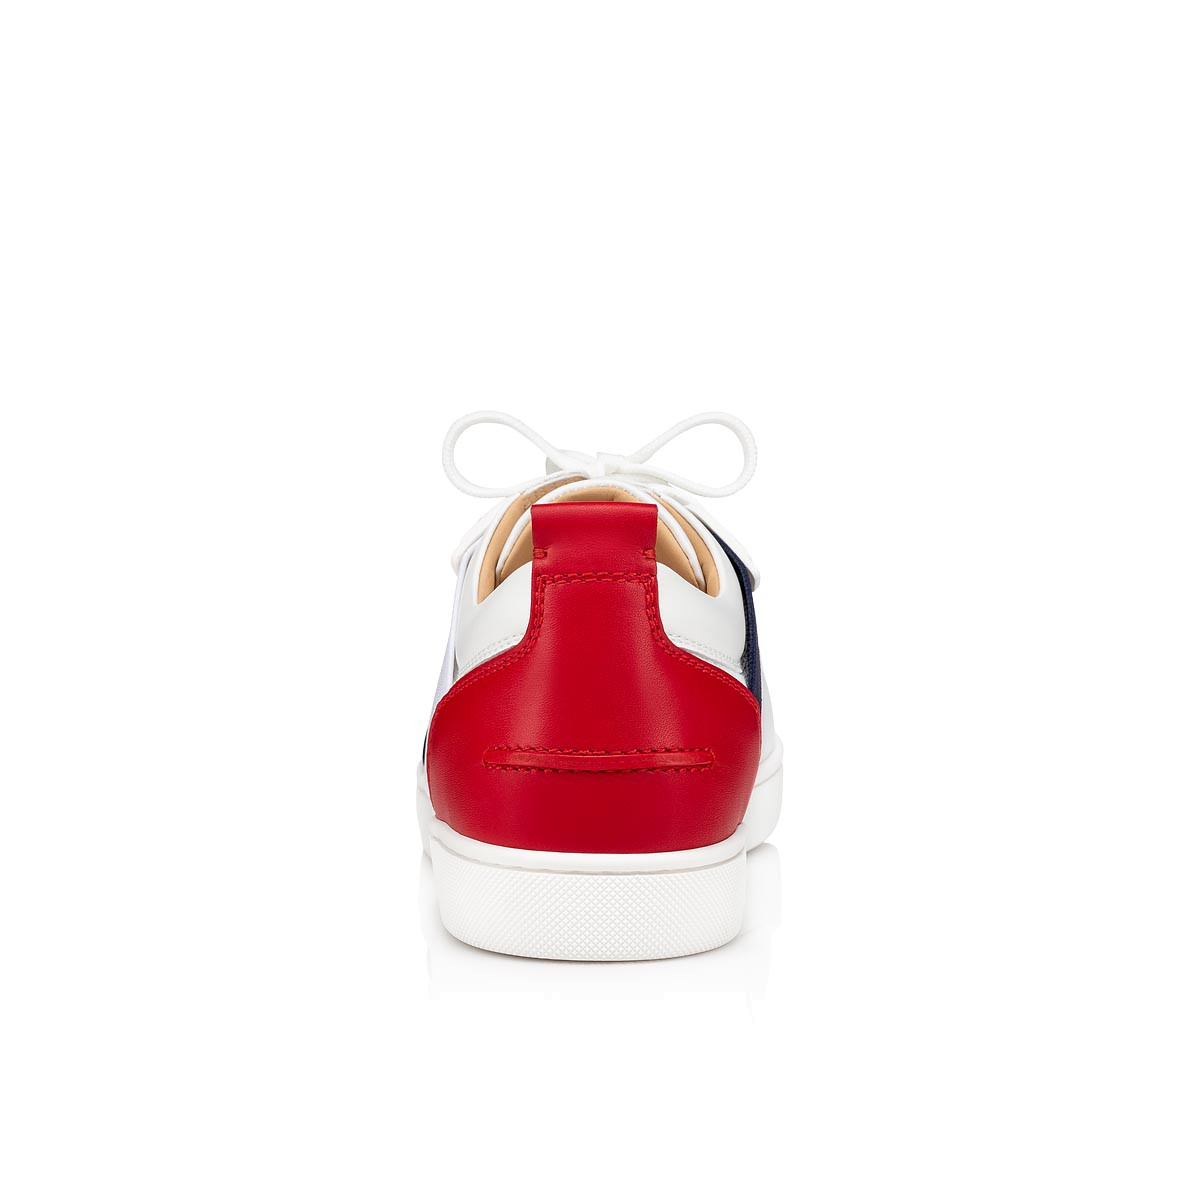 Shoes - Elastikid Flat - Christian Louboutin